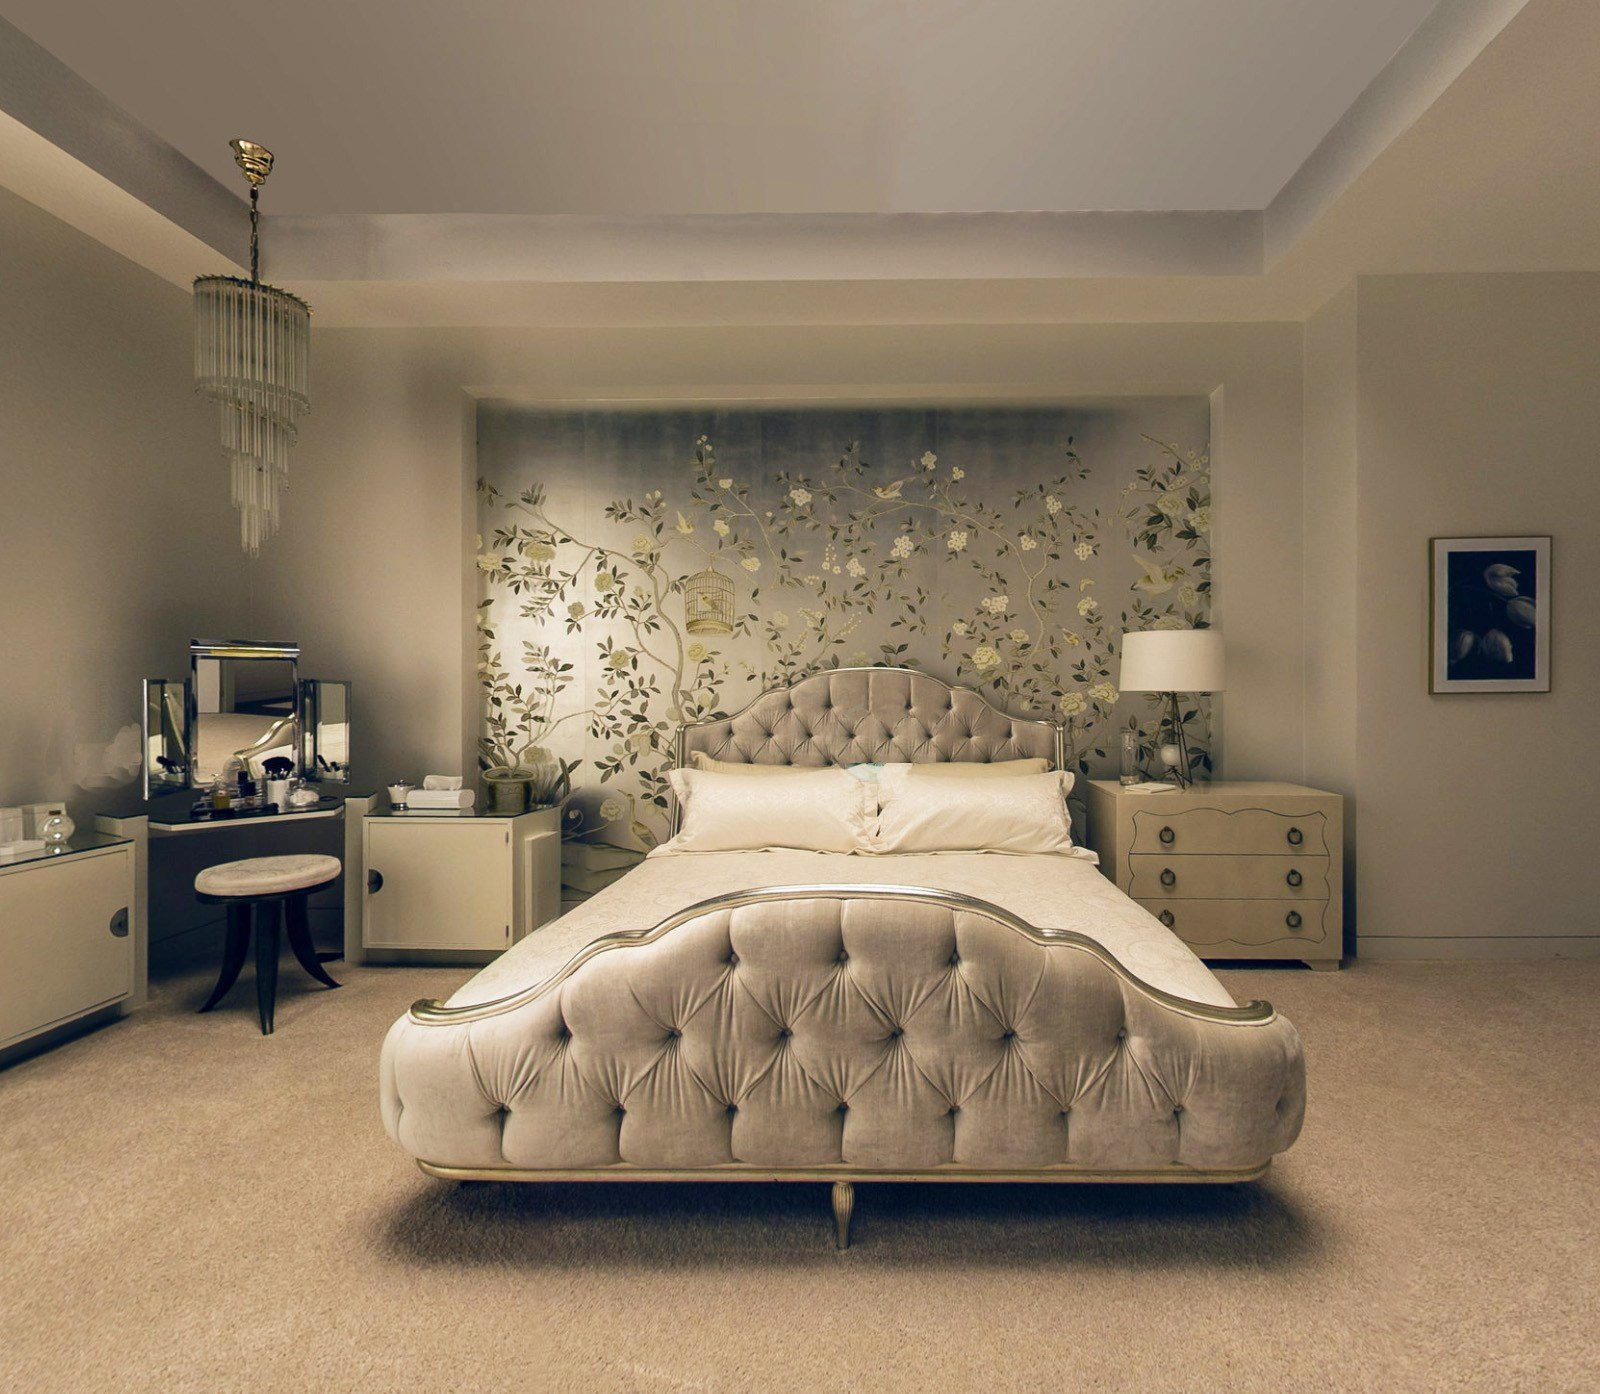 Best Inside Christian Grey S P*Nth**S* The Luxurious 50 Shades Of Grey Interiors Sarah Sarna With Pictures